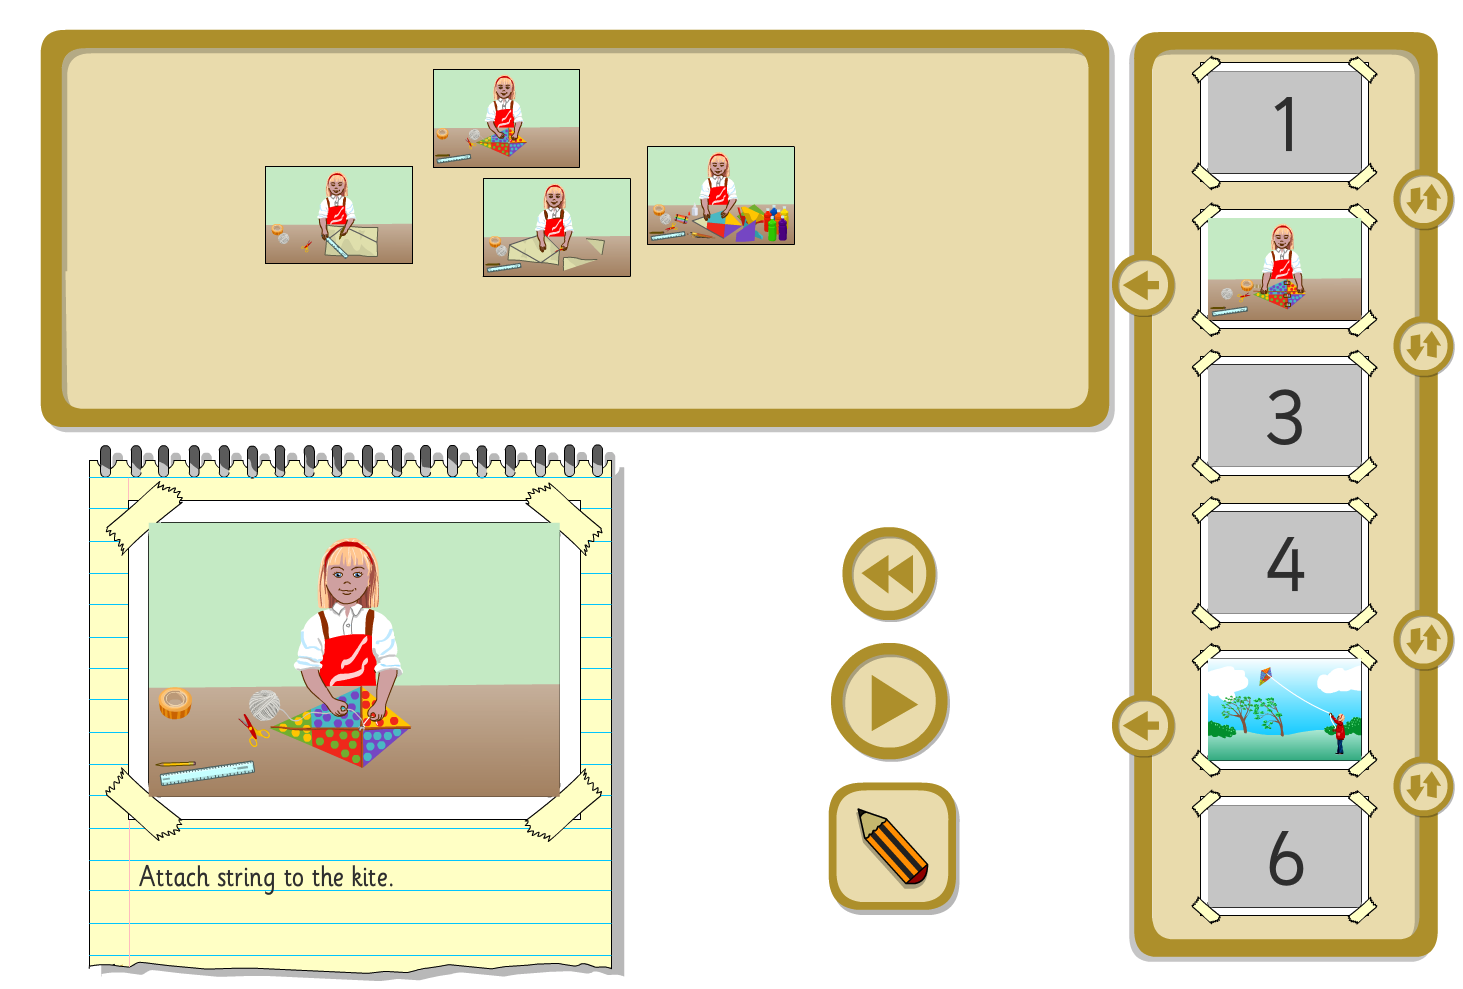 Interactive Sequencer - Making a Kite - KS1 Literacy